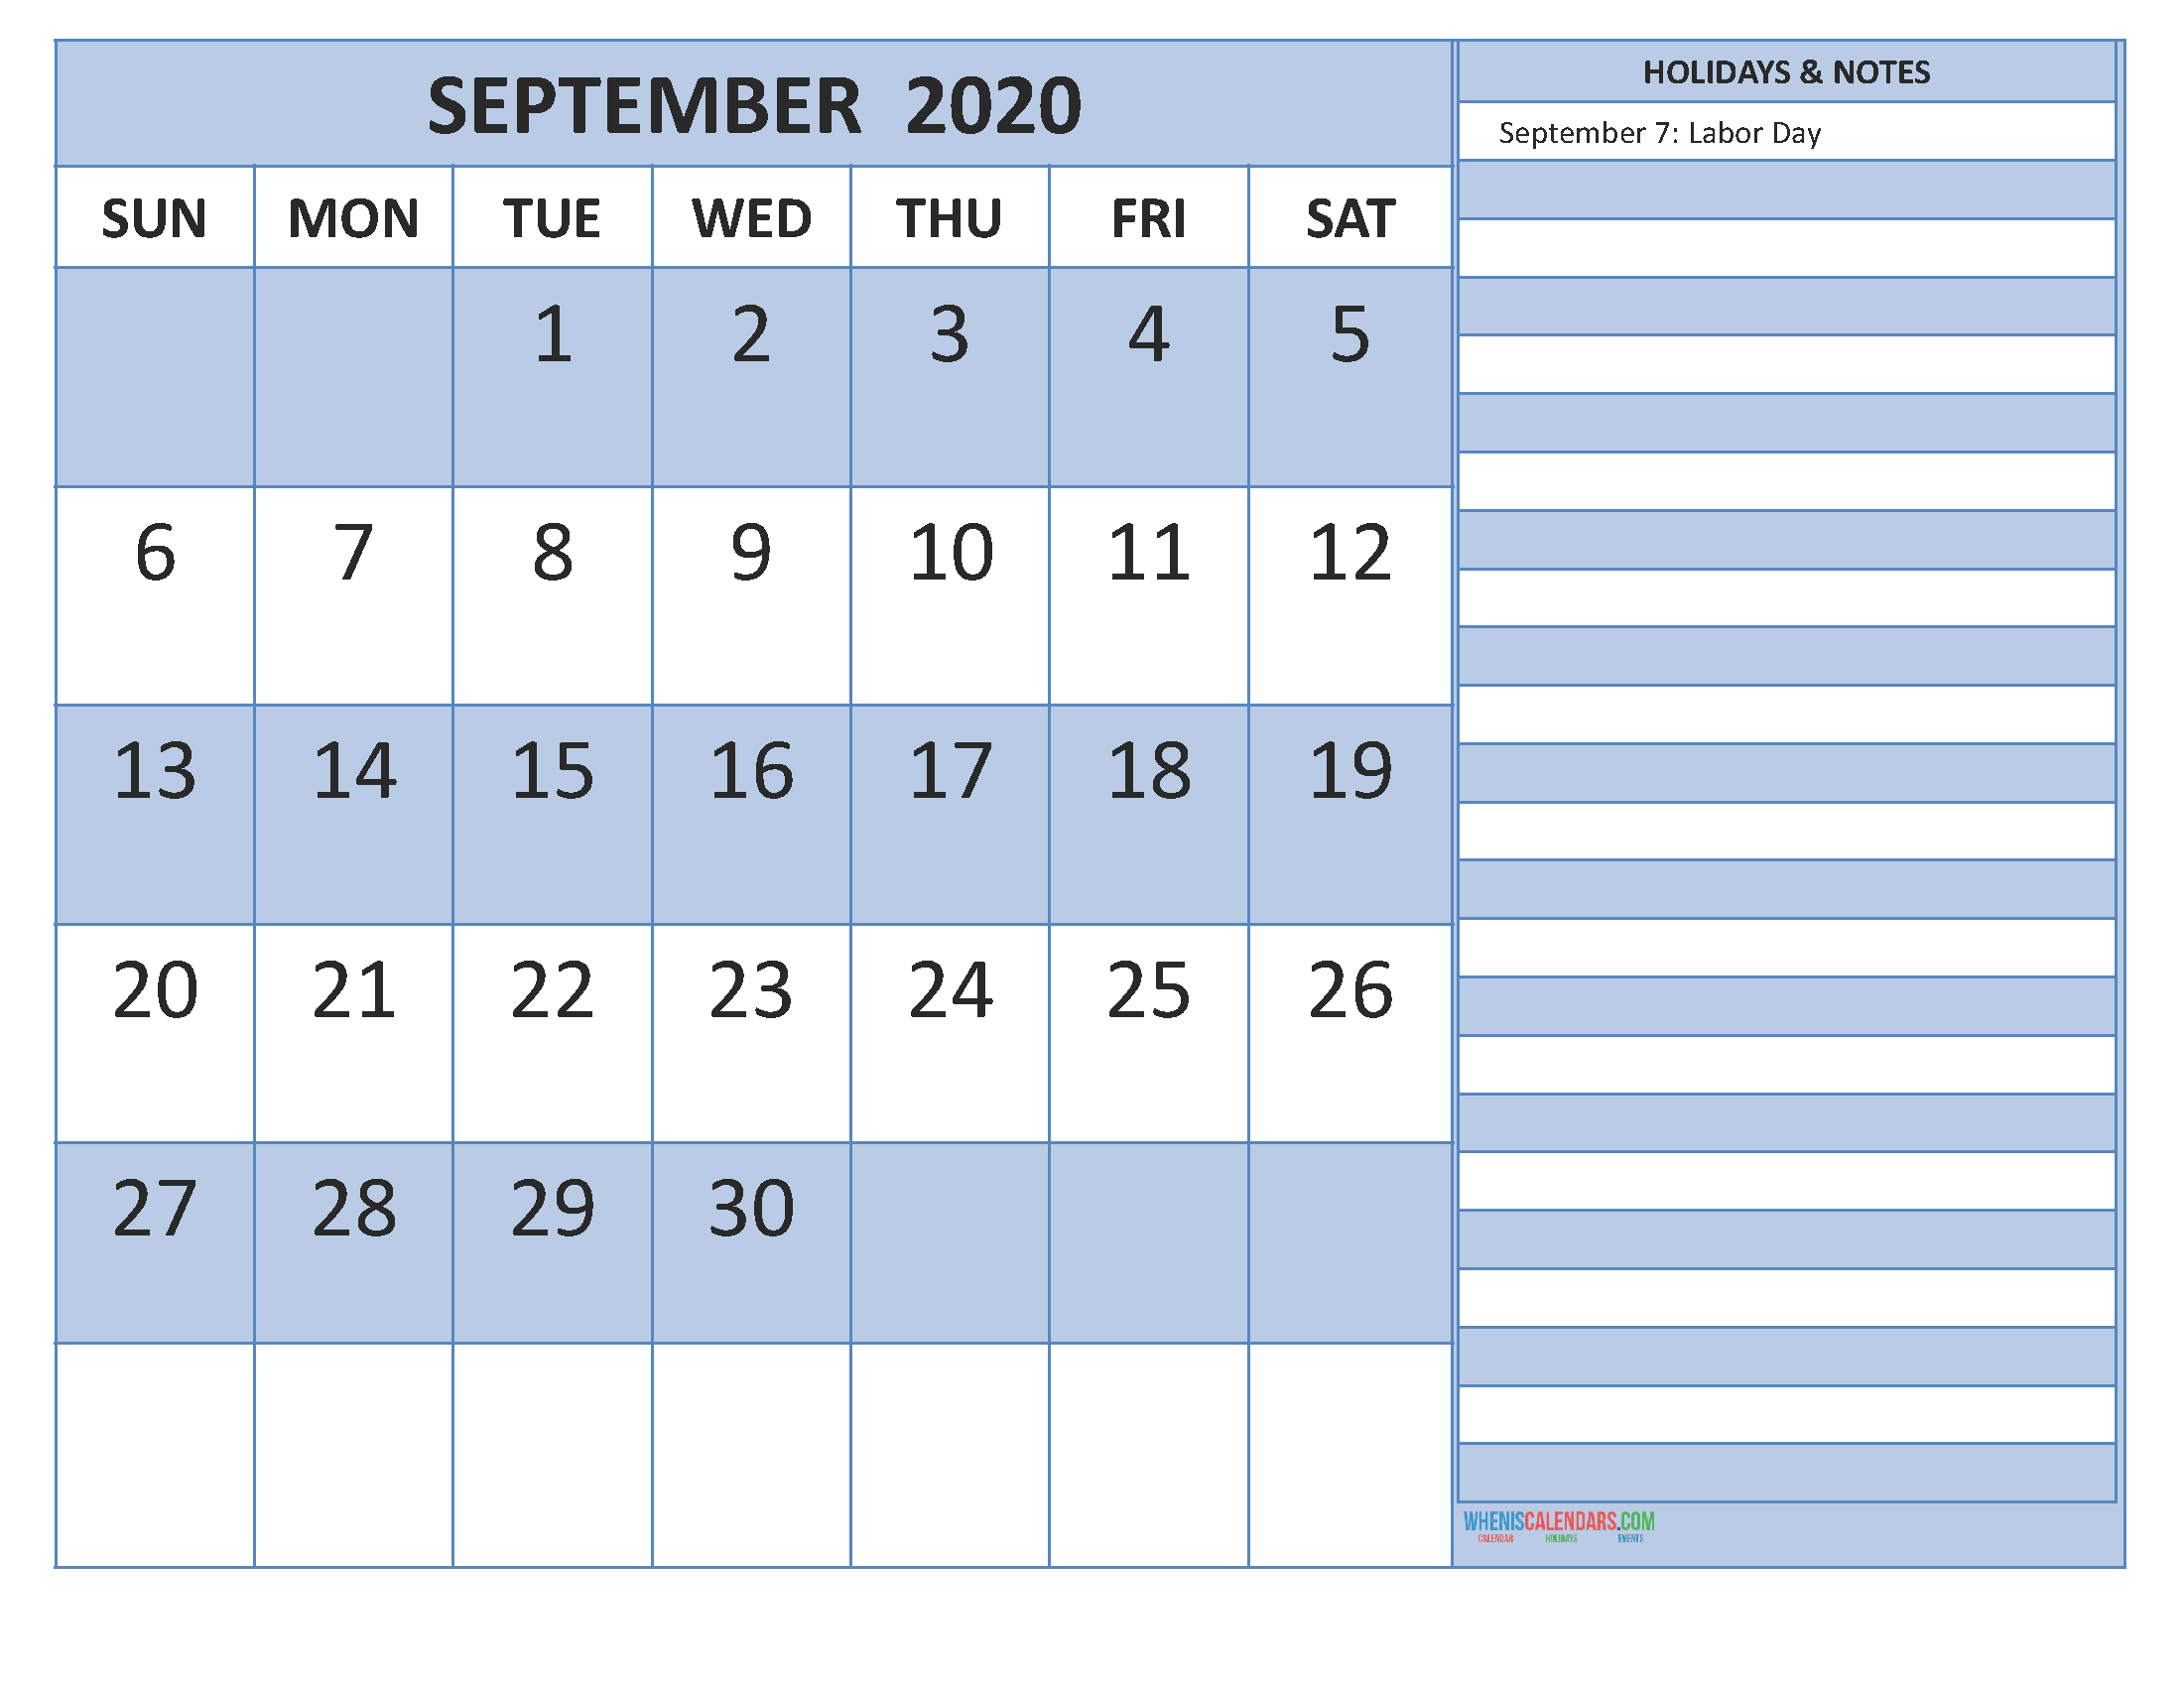 Free Monthly Printable Calendar 2020 September with Holidays